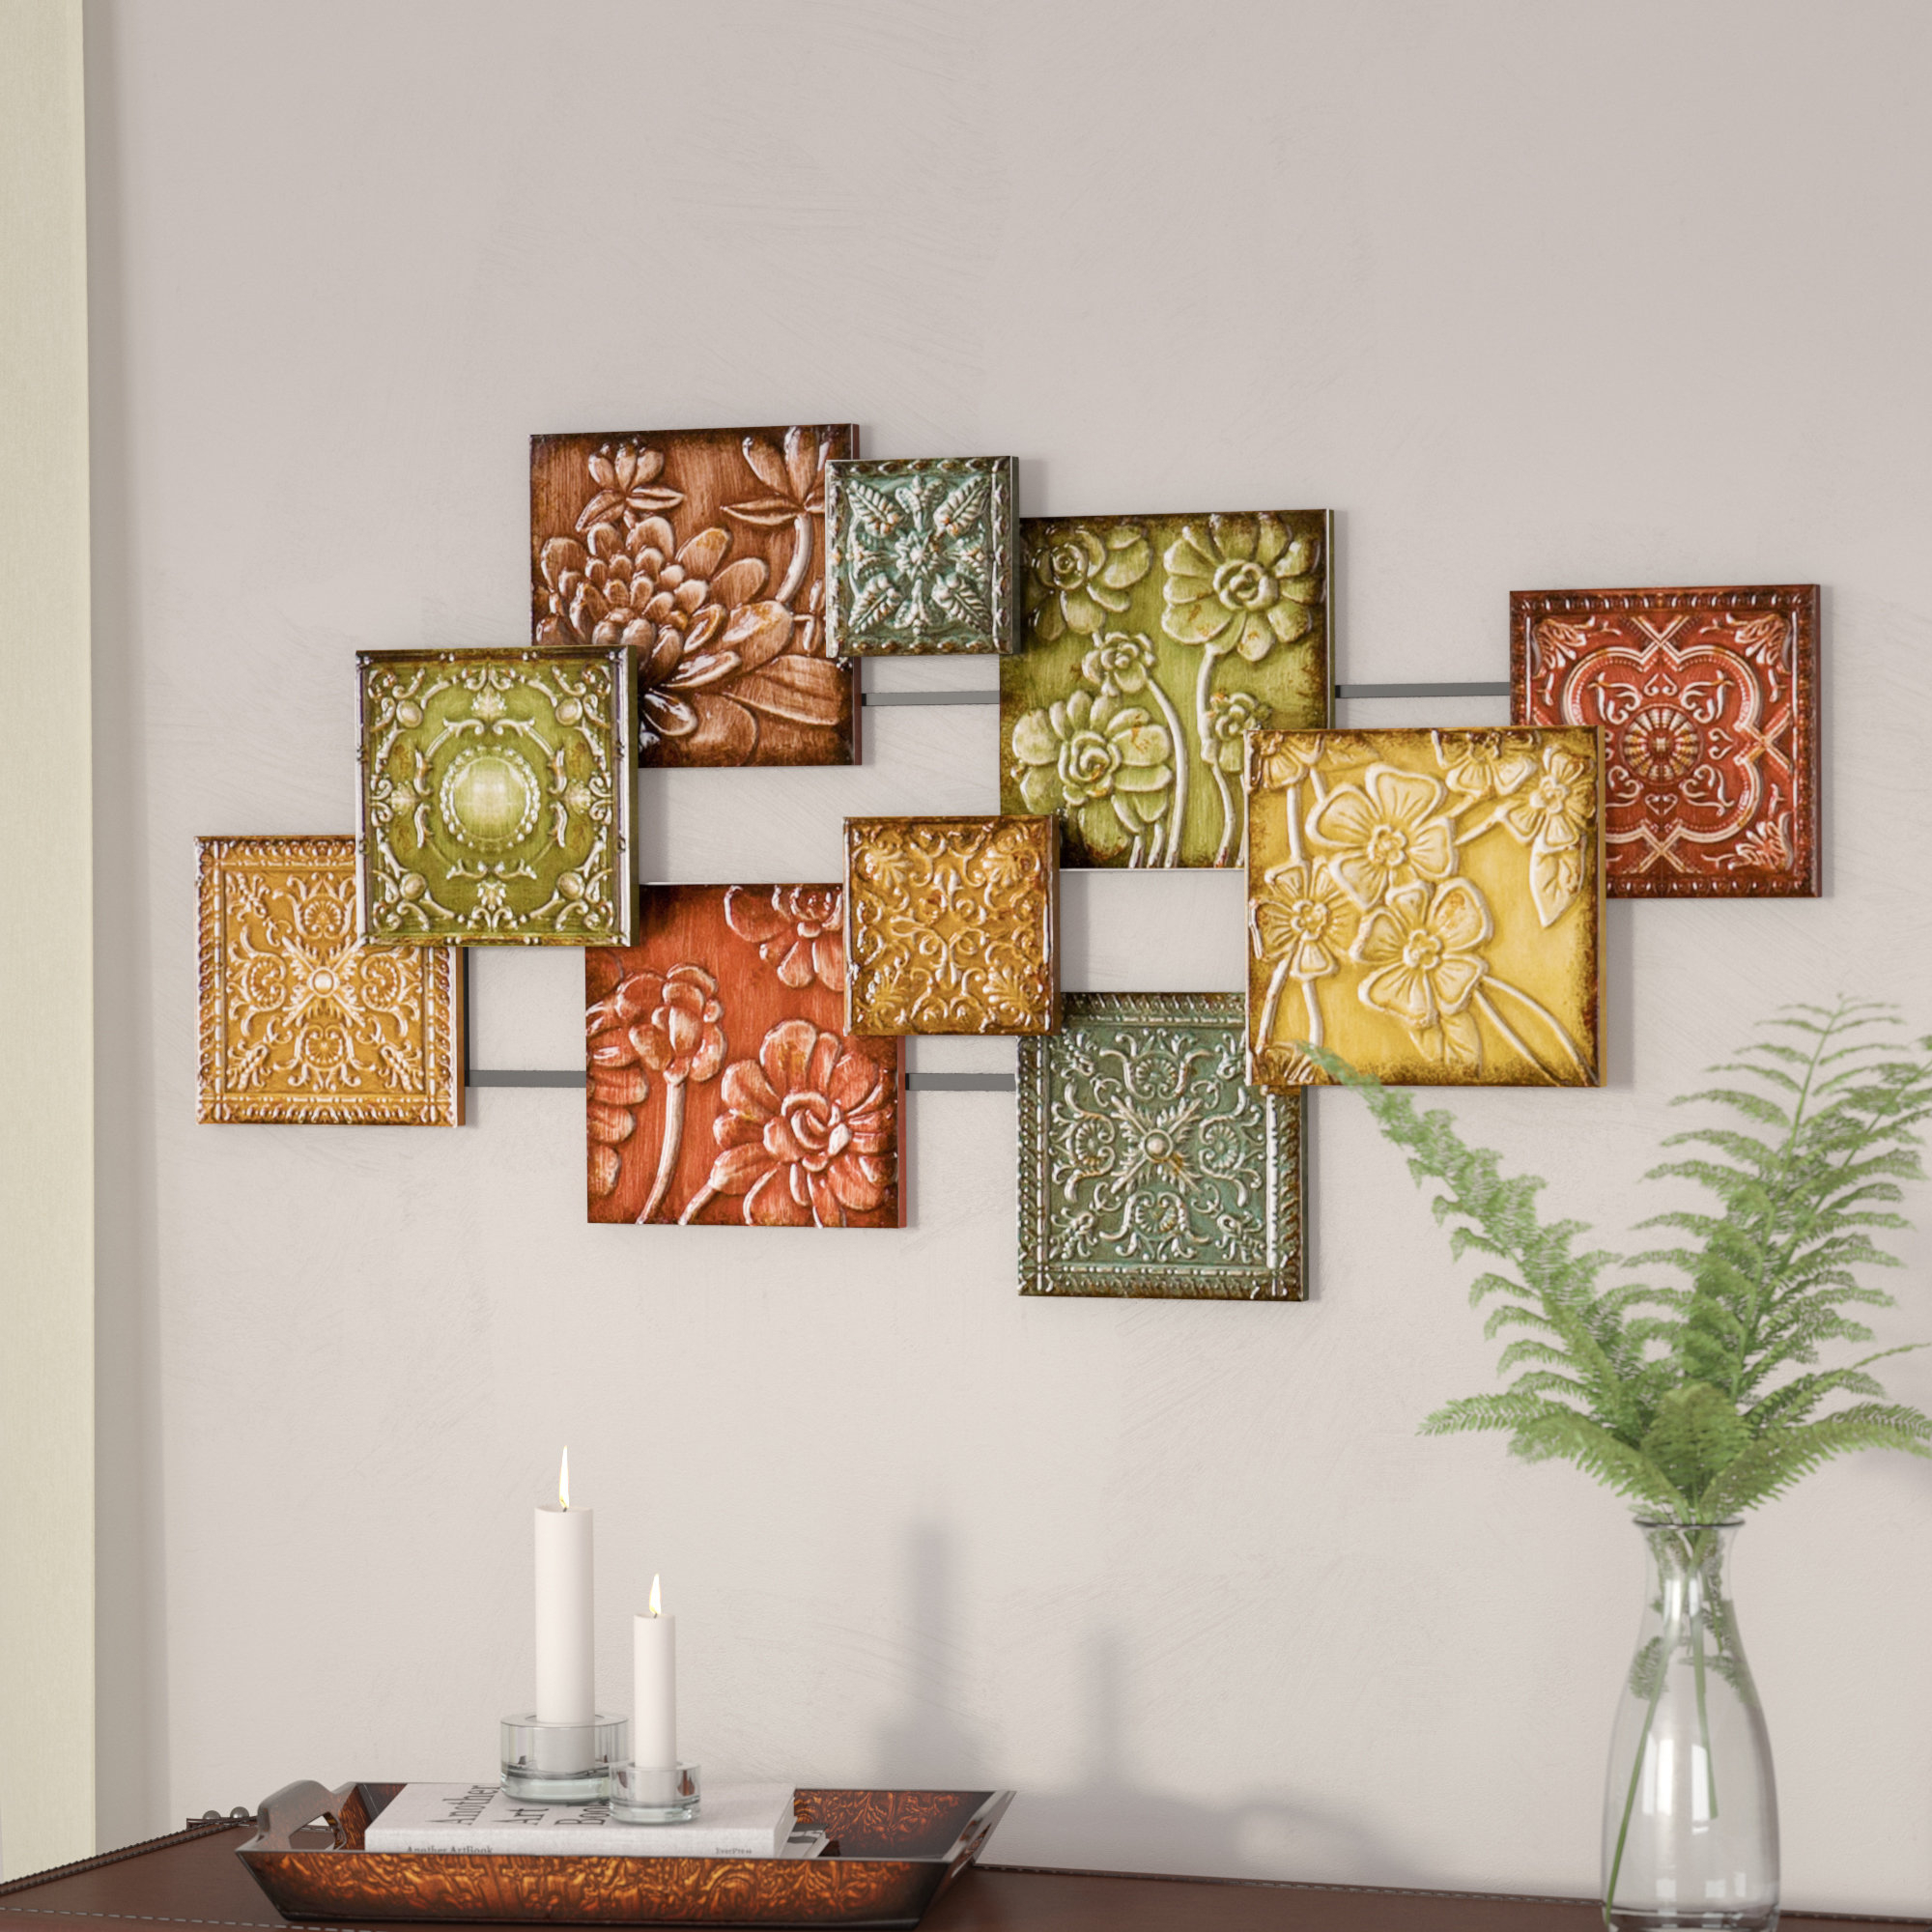 Starburst Wall Decor | Wayfair With Abstract Bar And Panel Wall Decor (Image 23 of 30)